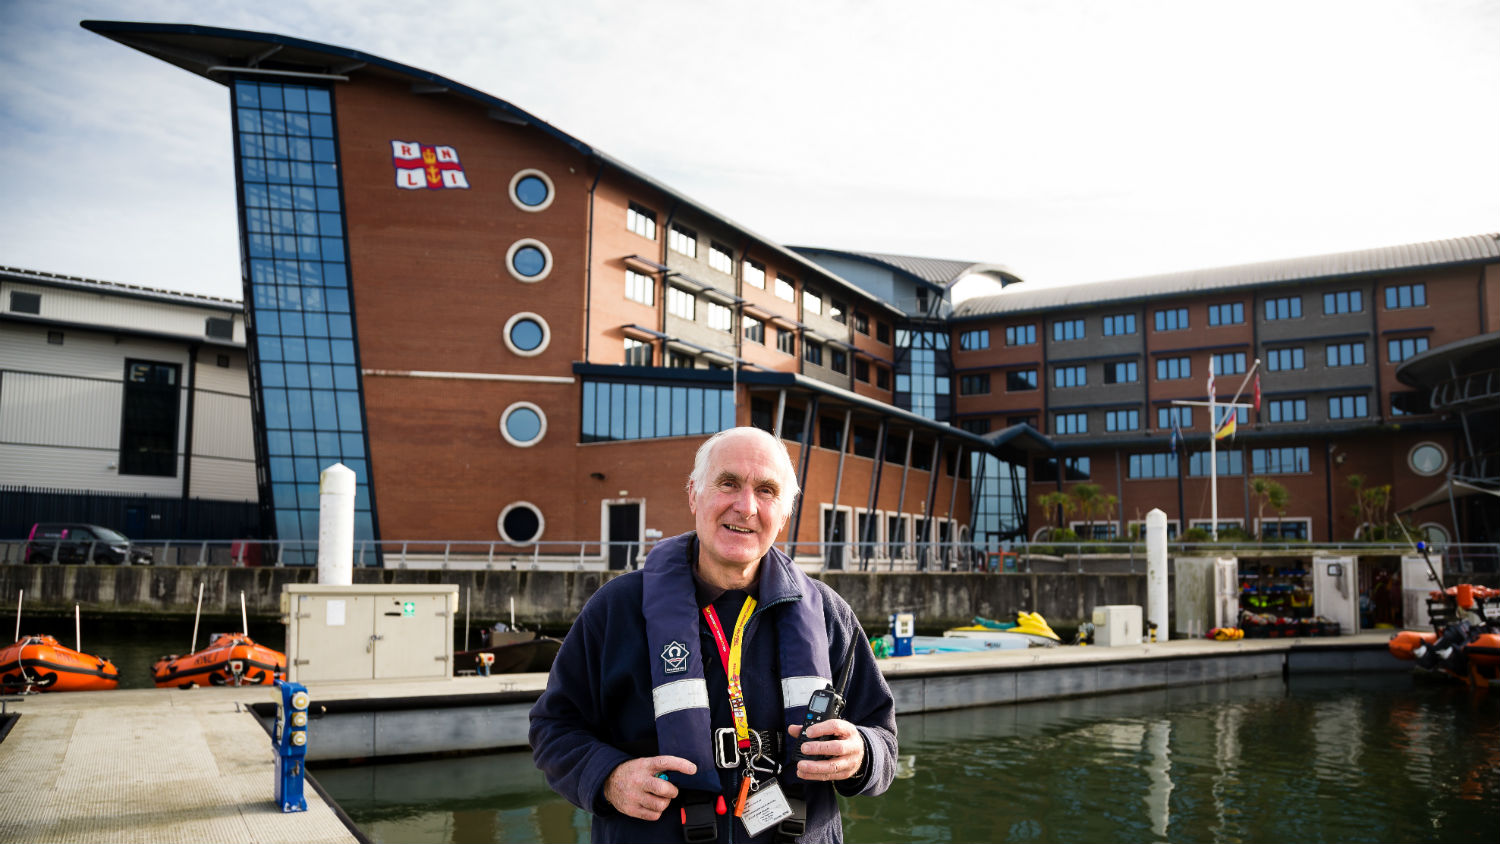 RNLI ambassador Gerald Beddard volunteers as an RNLI College Tour Guide and a bosun